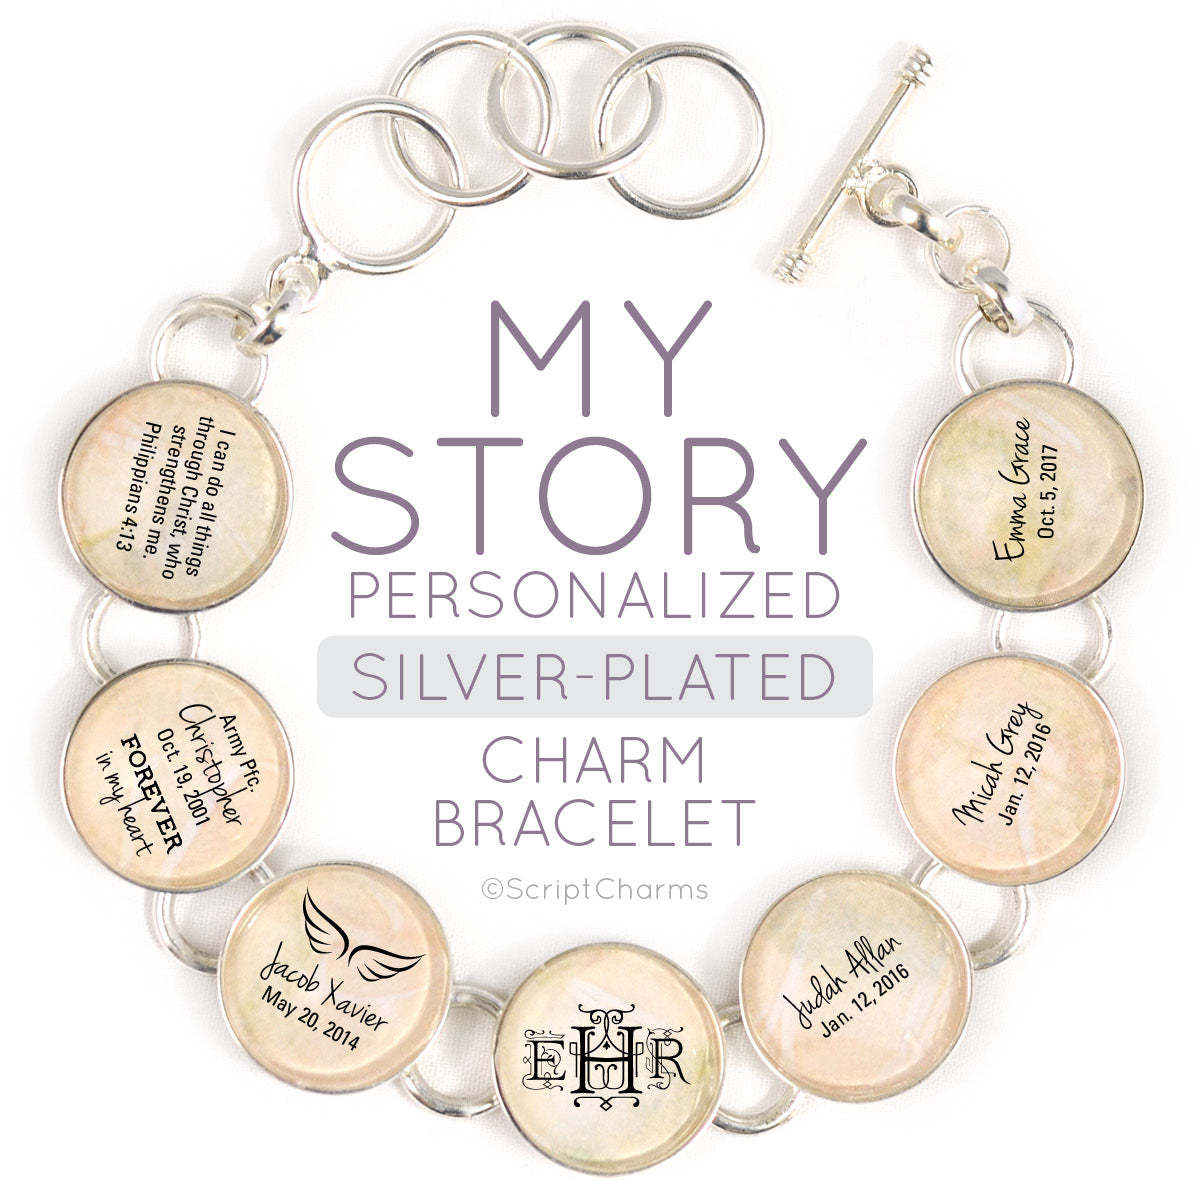 My Story - Silver-Plated Personalized Charm Bracelet